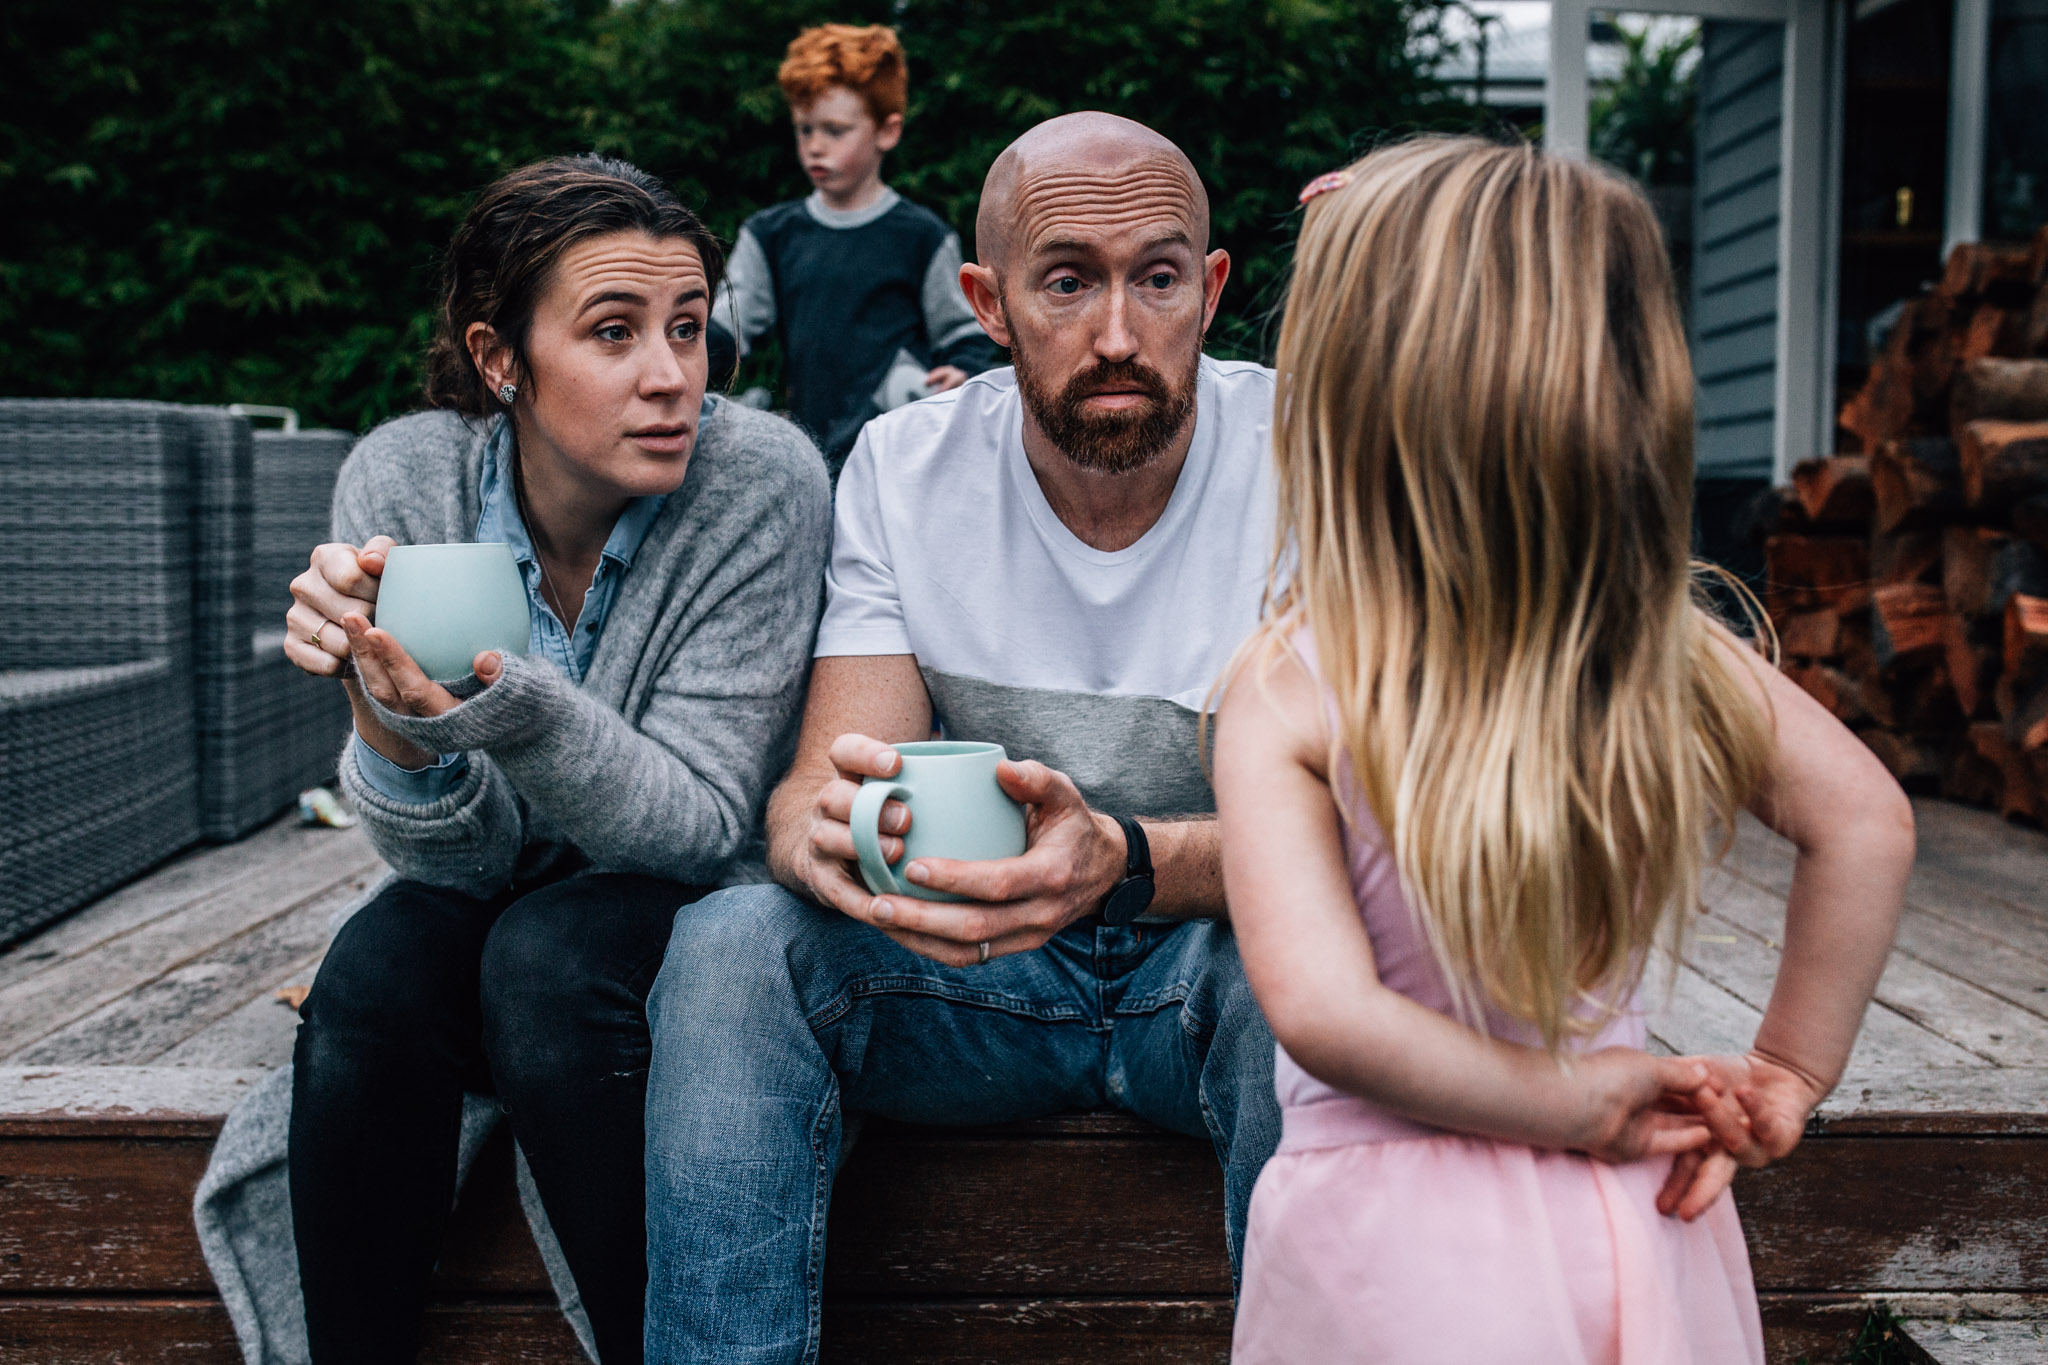 Parents with cups of tea chatting with small daughter.